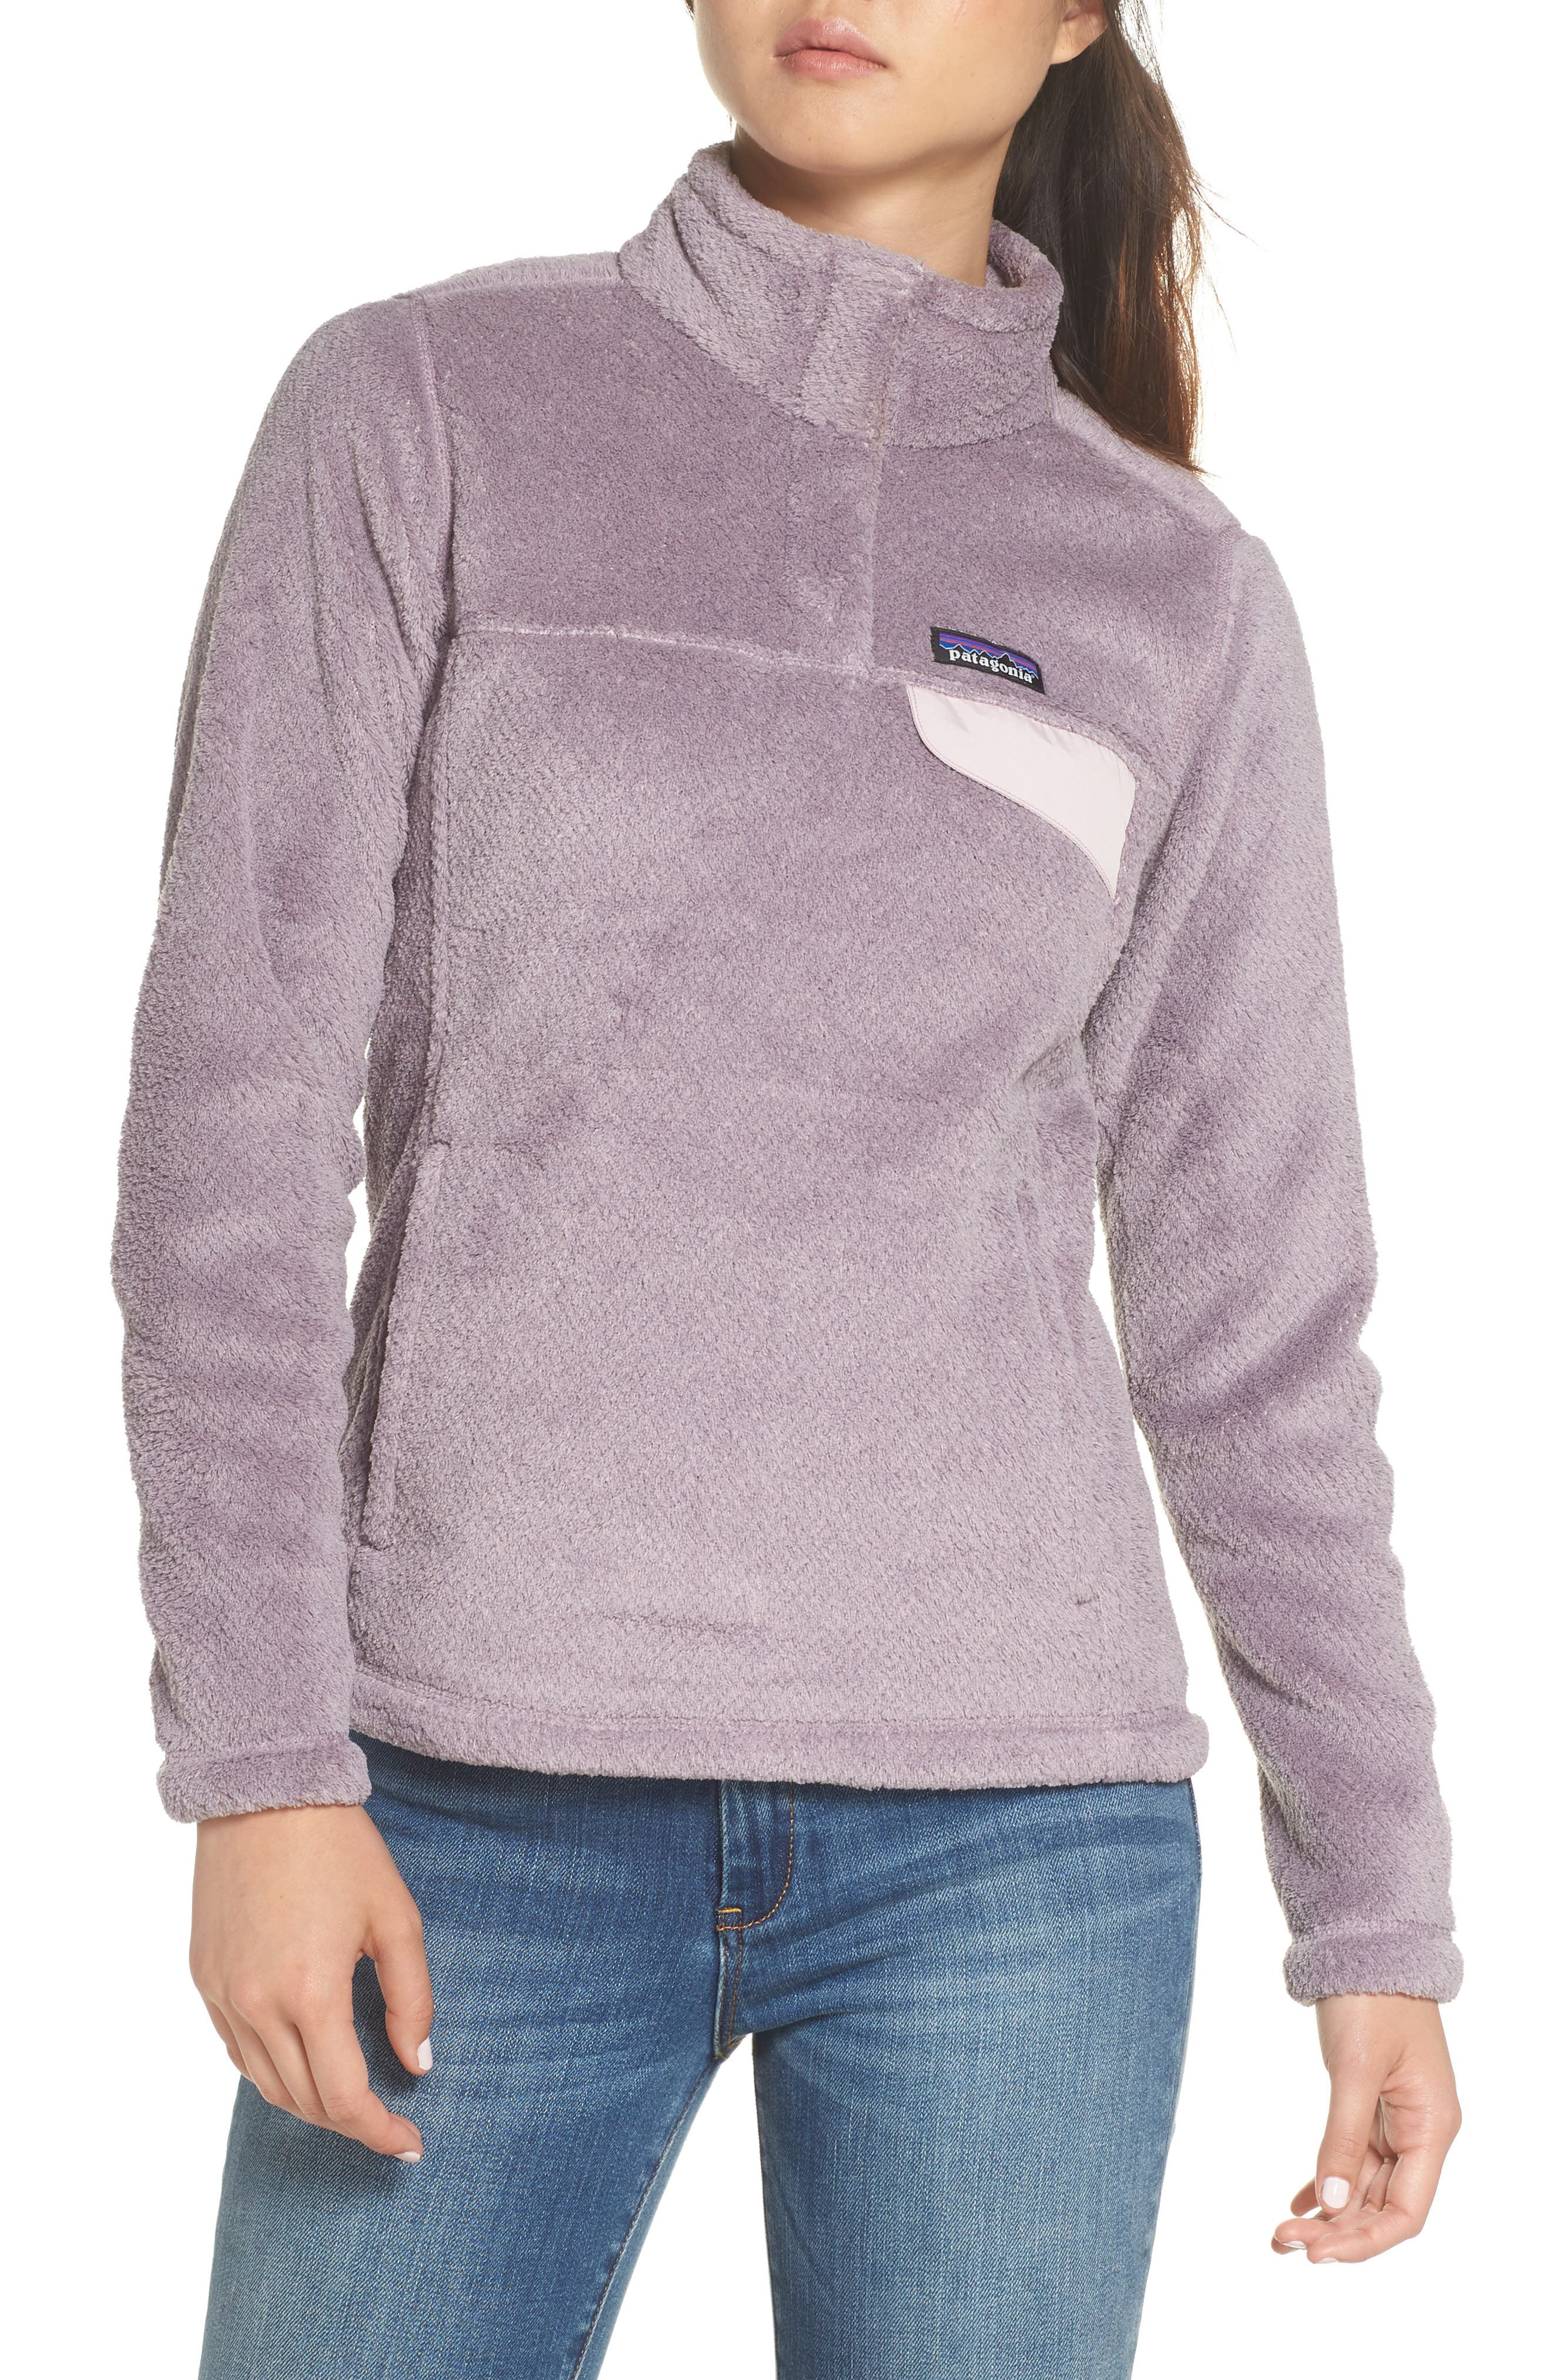 Re-Tool Snap-T<sup>®</sup> Fleece Pullover,                         Main,                         color, SMOKEY VIOLET PURPLE X-DYE